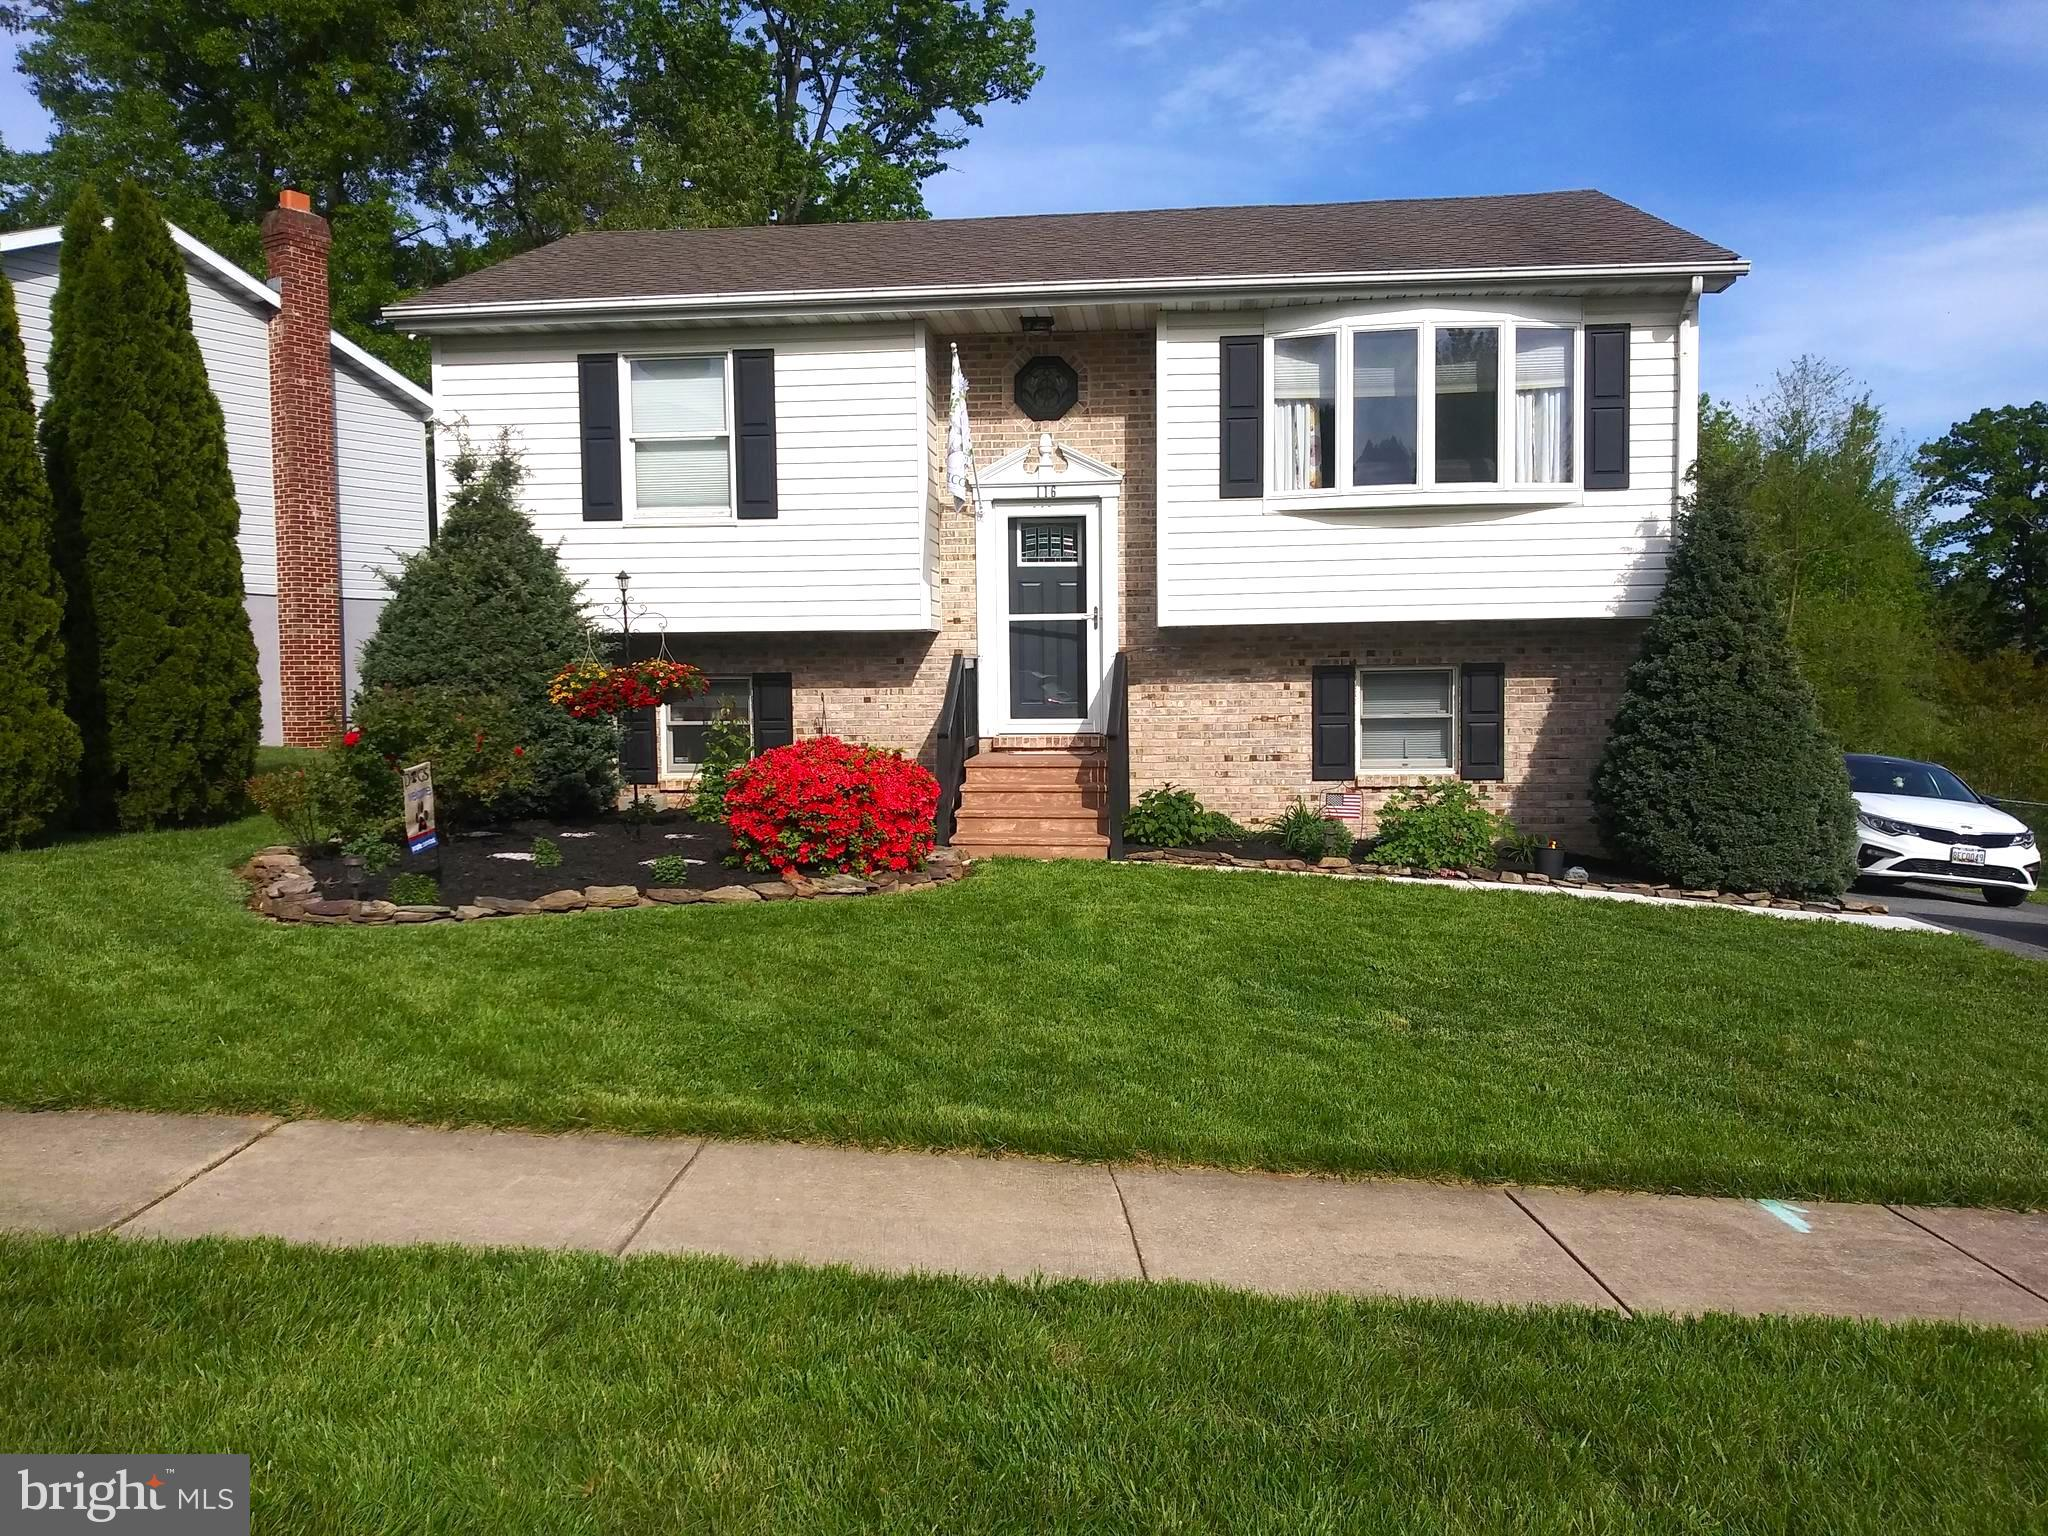 Welcome to this is a move in ready home on a well taken care of street. This lovely landscaped  home